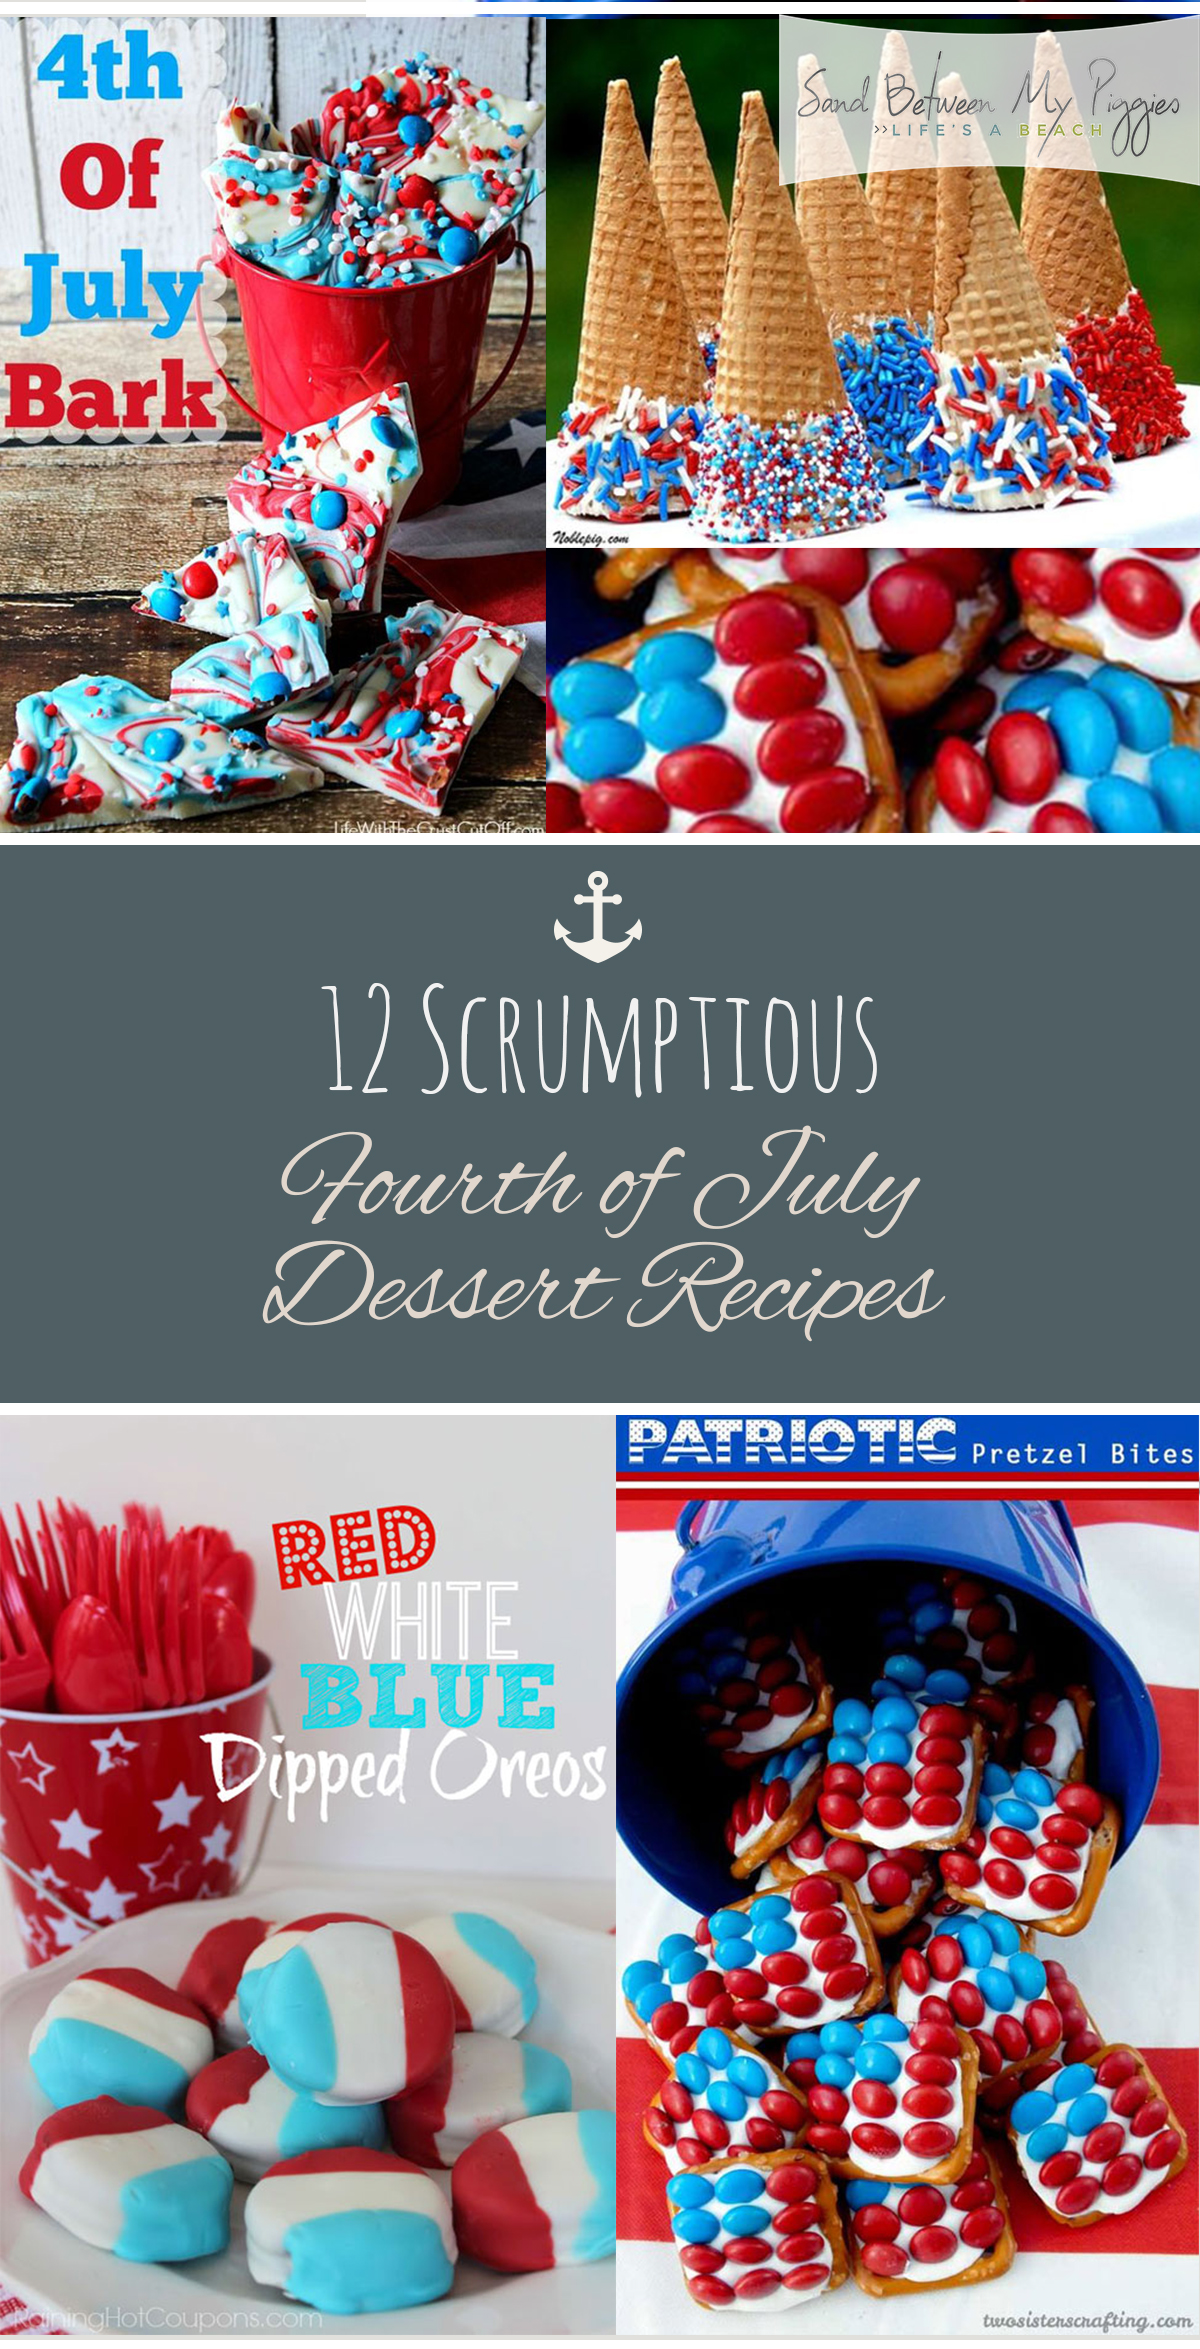 12 Scrumptious Fourth of July Dessert Recipes| Holiday Recipes, Yummy Holiday Recipes, 4th of July Recipes, Recipes for Summer, Easy Recipes for Summer, Easy 4th of July Recipes, Food, Food for Summer Parties, Desserts, Dessert Recipes, Holiday Dessert Recipes.